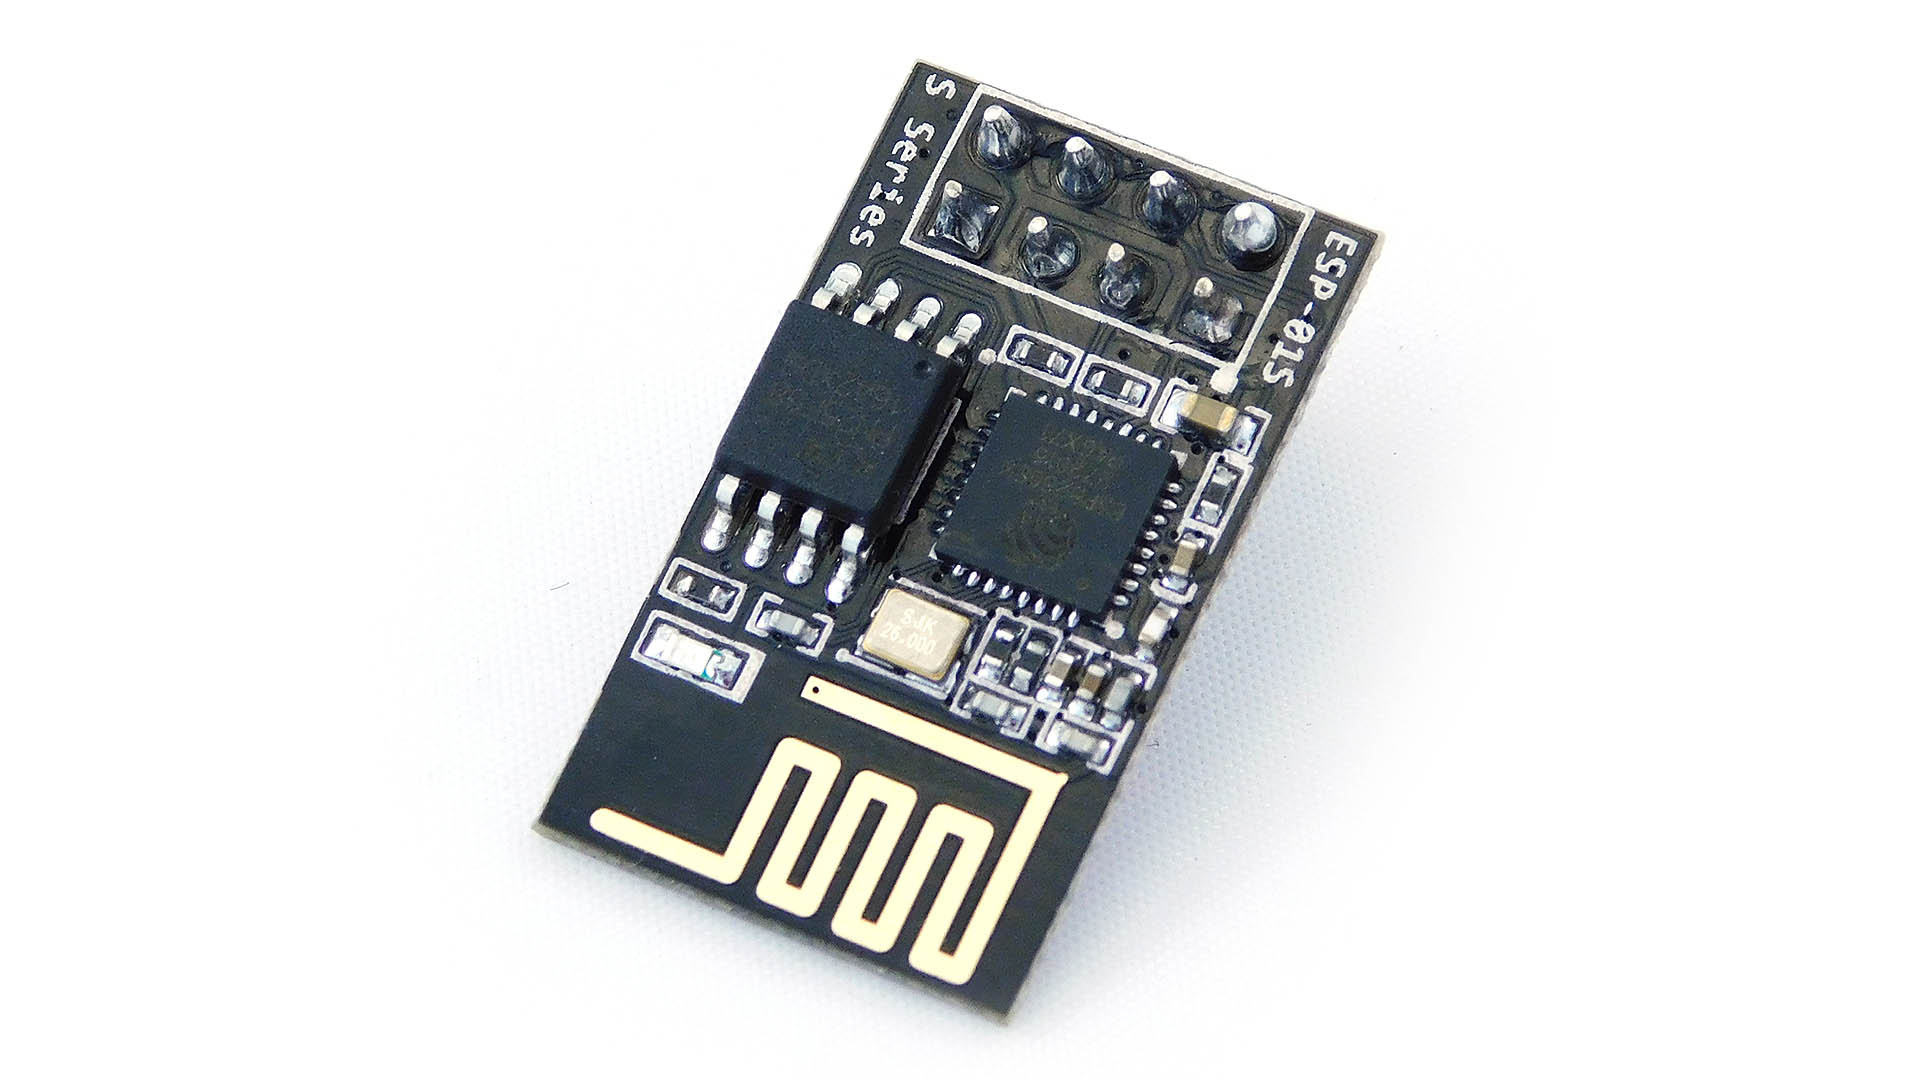 Buton Sonerie WiFi soneriile fără fir conexiuni WiFi avertizare pe telefonul mobil modul WiFi ESP826601S circuitul ESP8266 modul WiFi serial firmware placă de dezvoltare breadboard ESP8266 WiFi Module for Dummies modul FTDI de 3.3V ESP8266 How to Install the ESP8266 Board in Arduino IDE Generic ESP8266 Module